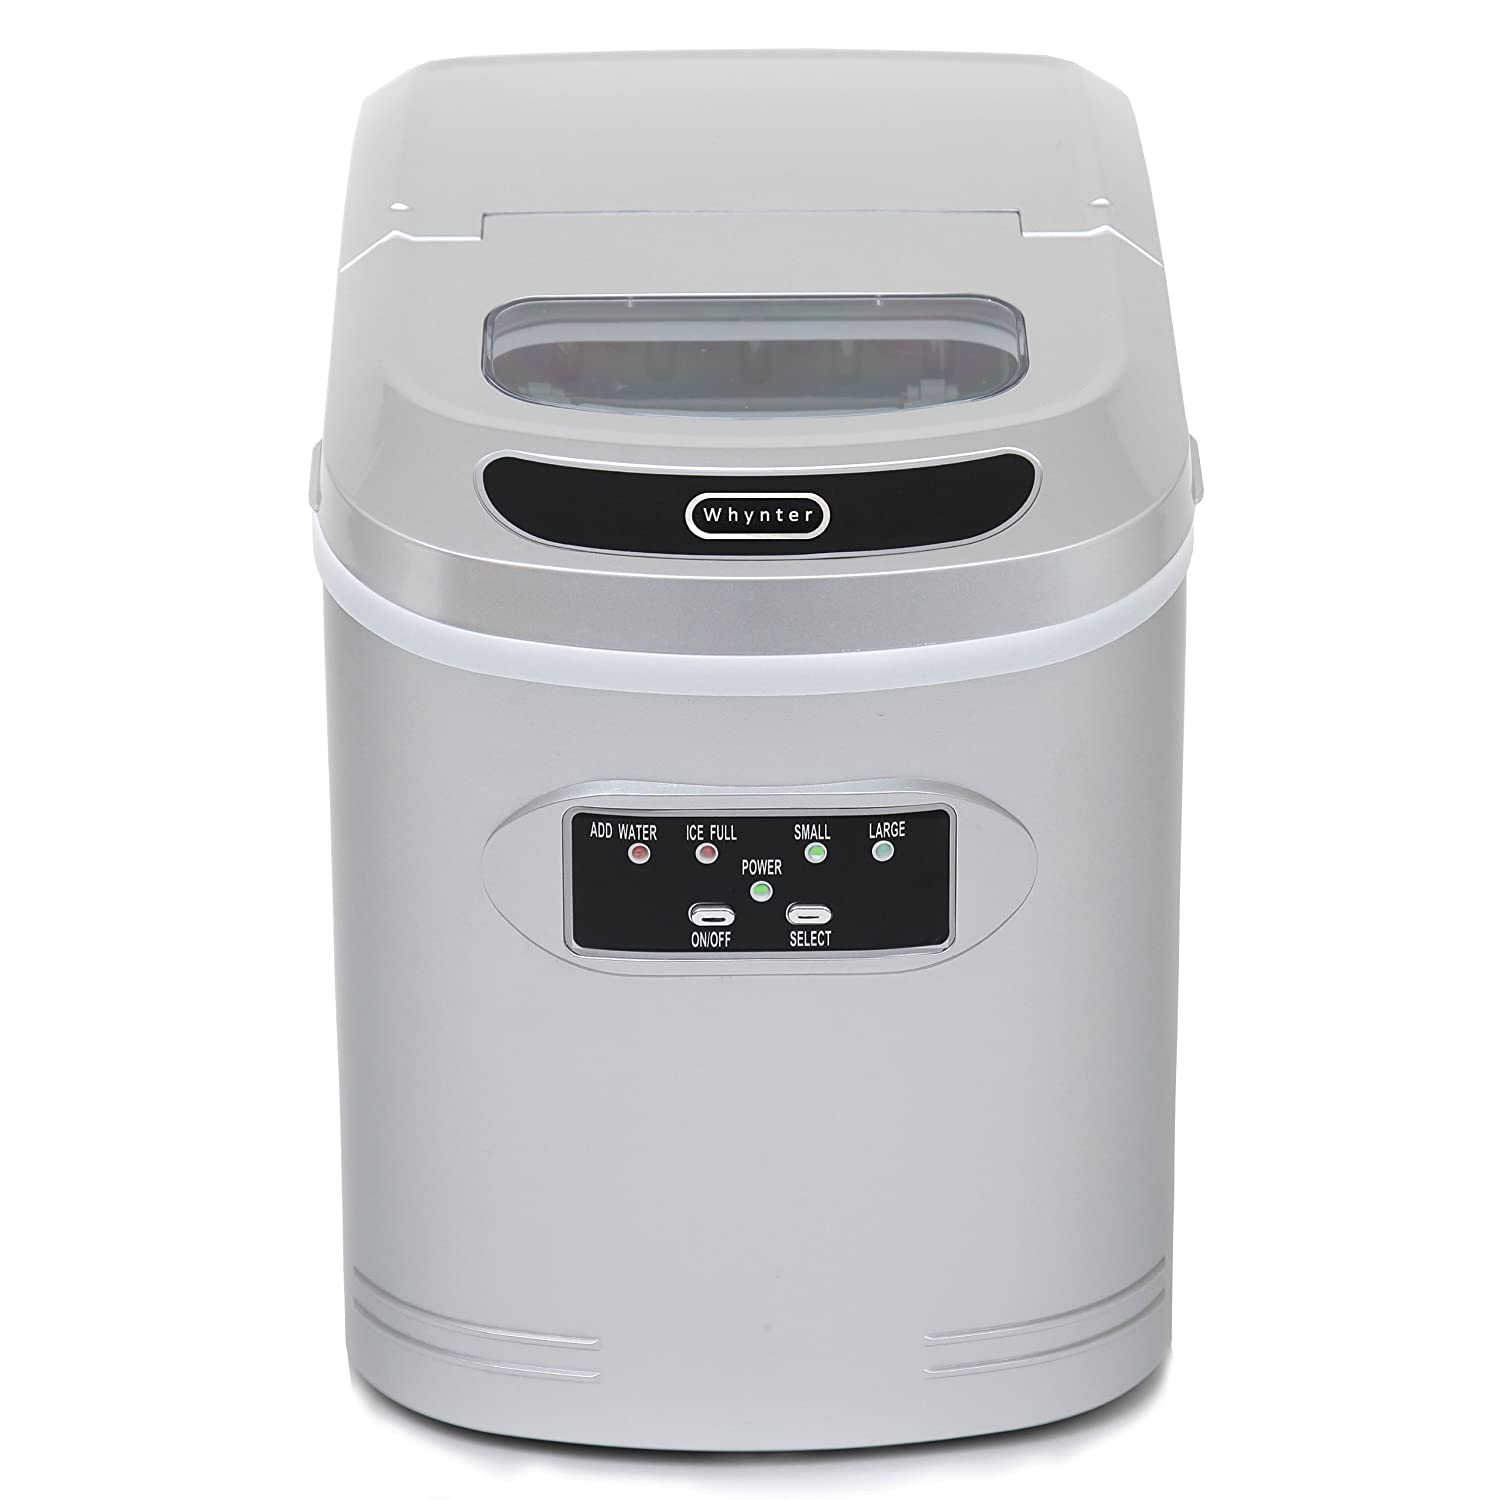 Whynter IMC-270MS Compact Ice Maker, 27-Pound, Metallic Silver Whynter Small Appliances